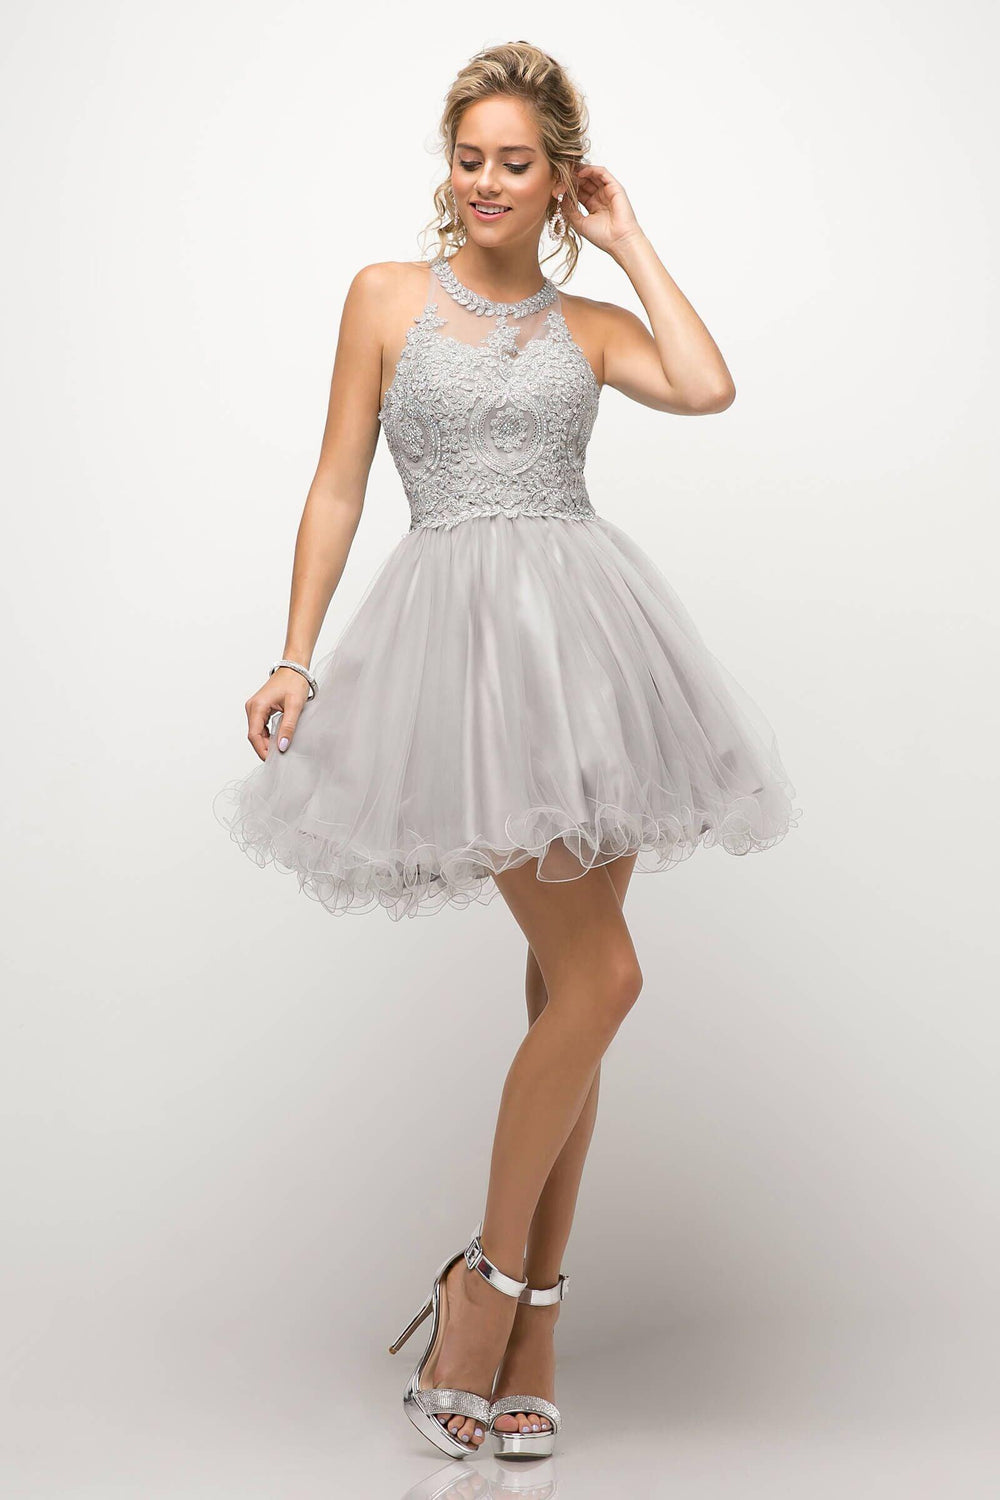 Short Prom Halter Neck Homecoming Dress - The Dress Outlet Silver